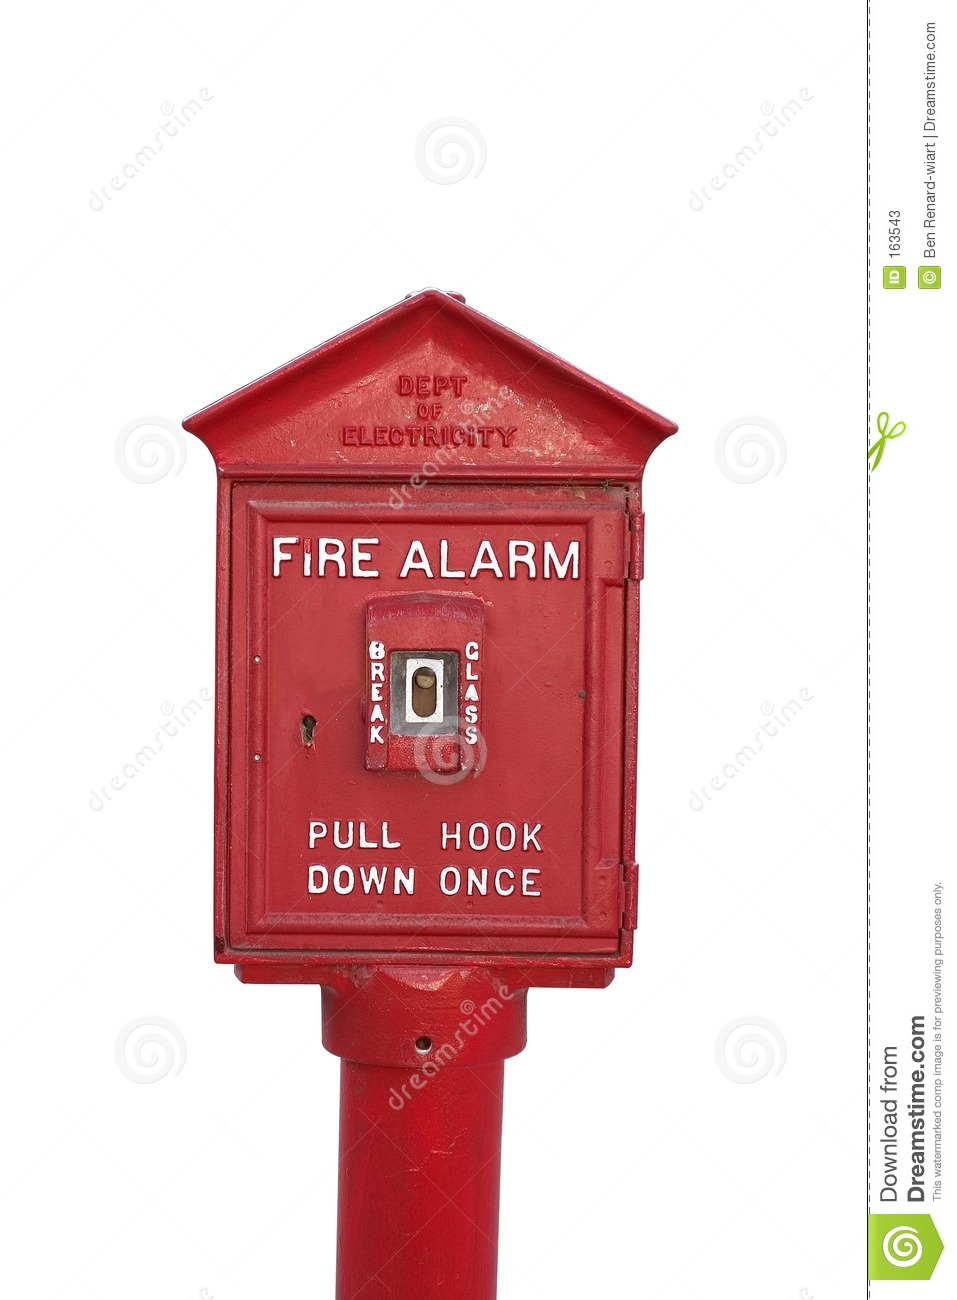 Fire alarm, isolated.